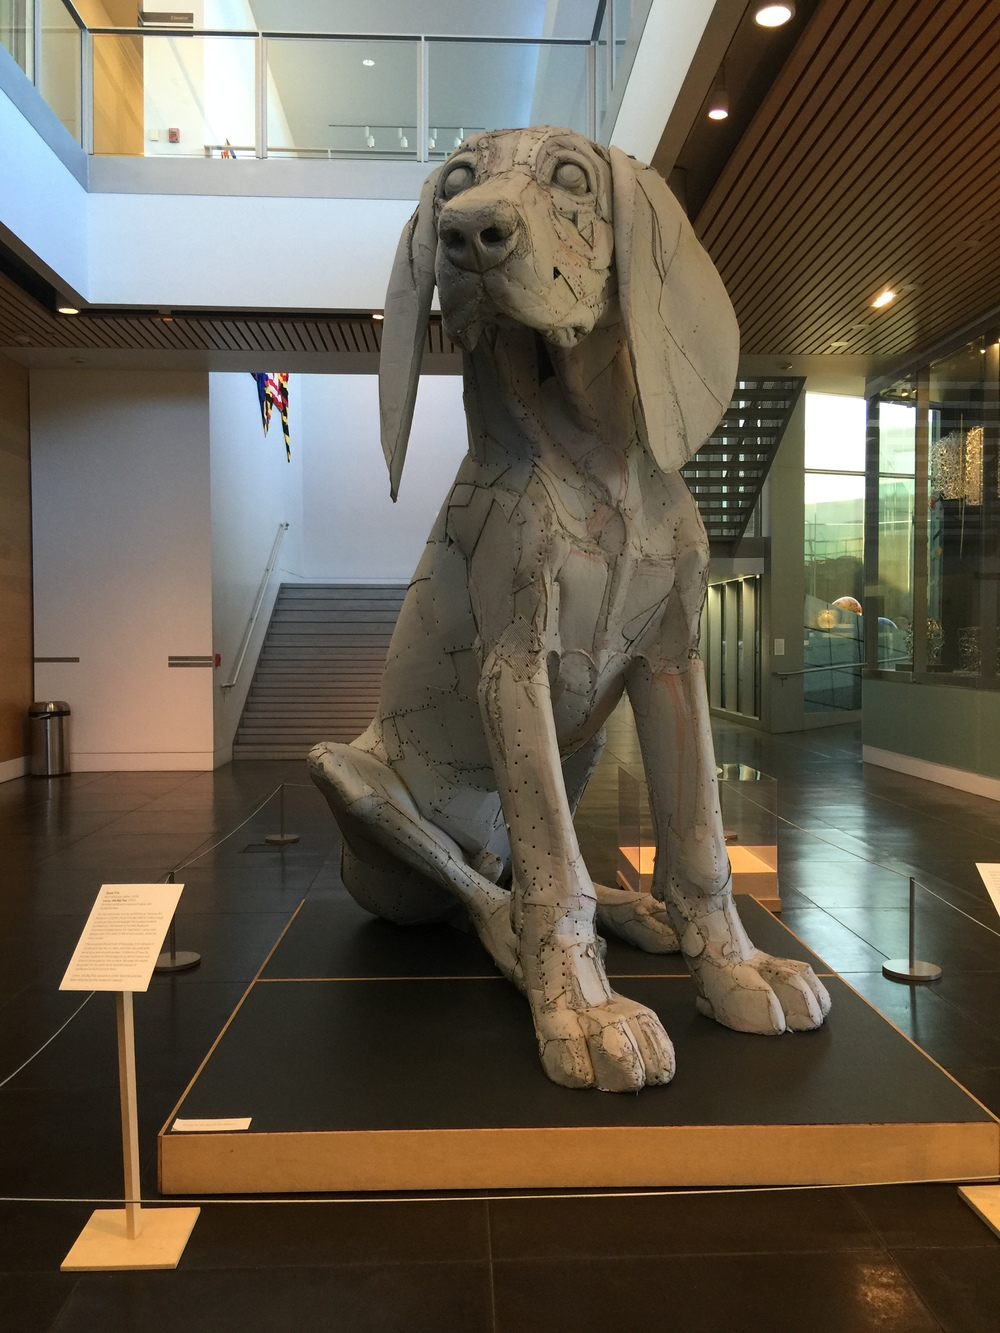 10-foot-tall cardboard dog, Leroy, The Big Pup (by Scott Fife) in the lobby of the Tacoma Art Museum